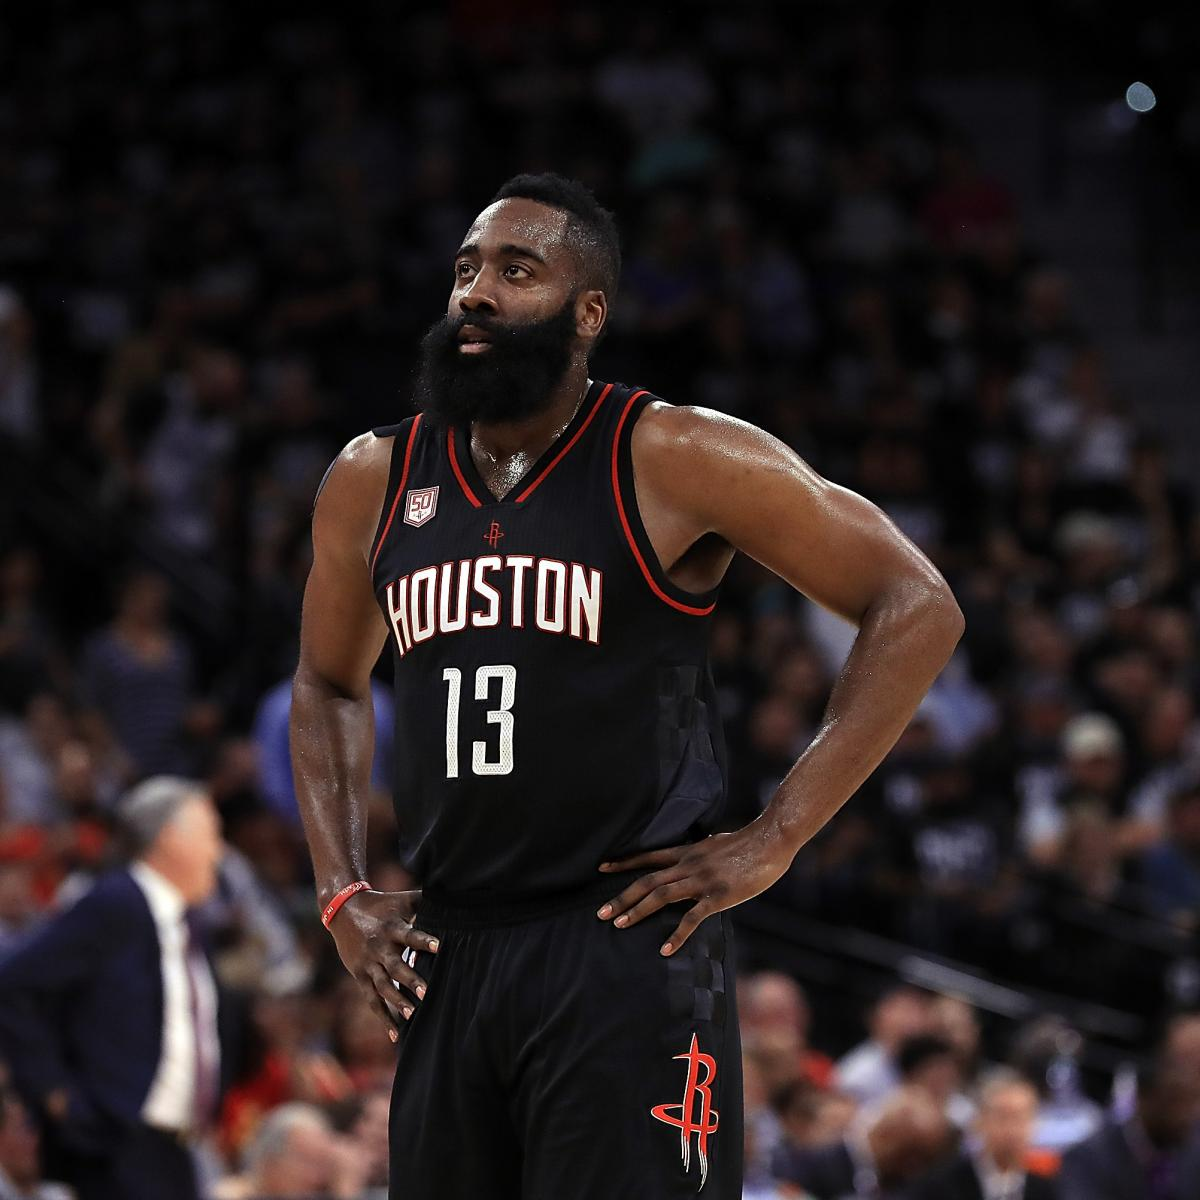 James Harden Total Points: Houston Rockets Win By Historic Margin In Game 1 Over San